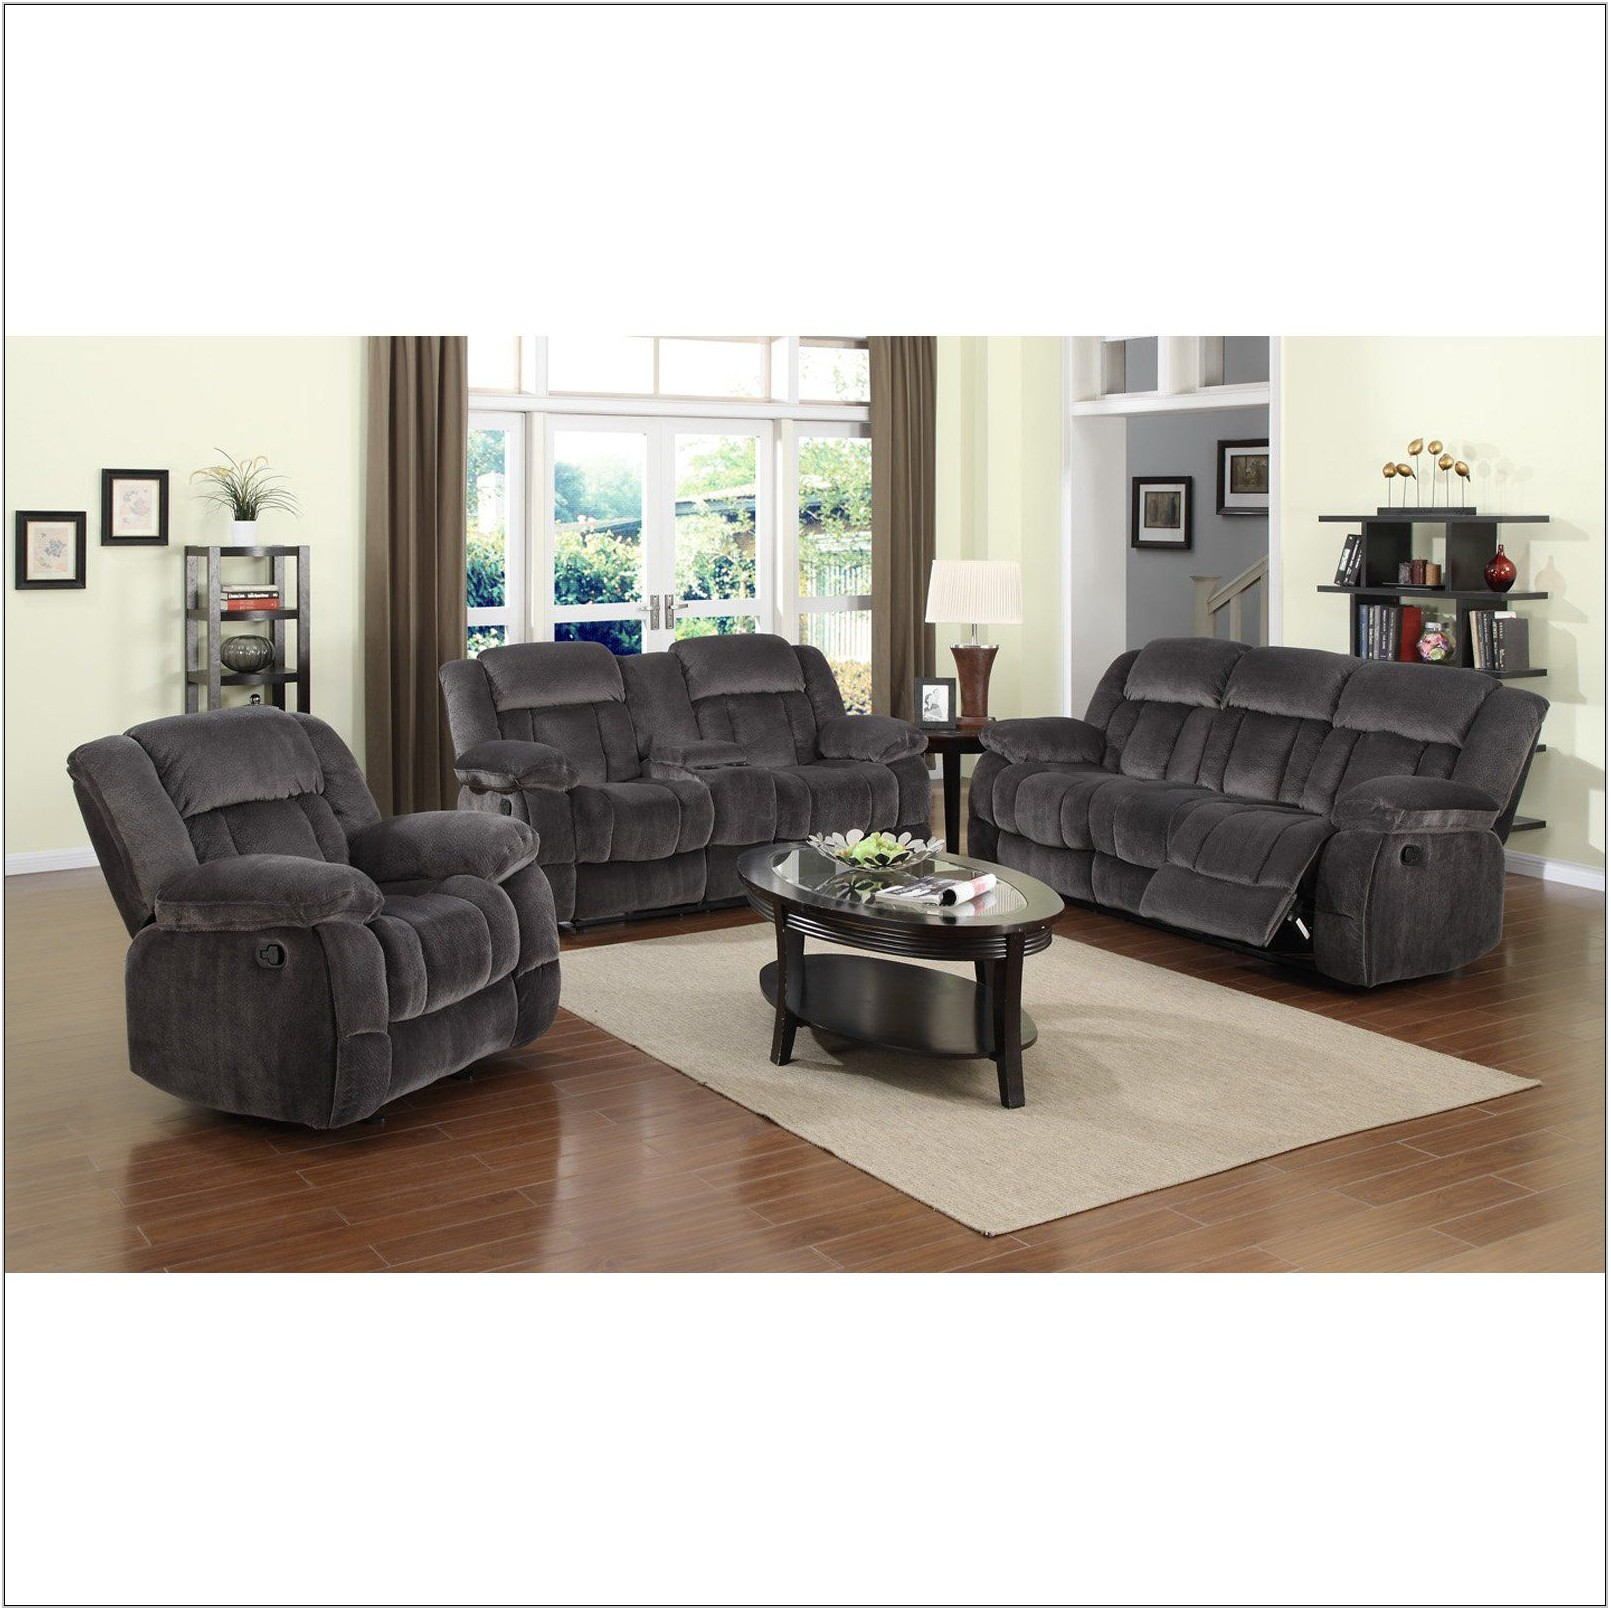 Charcoal Gray Living Room Set